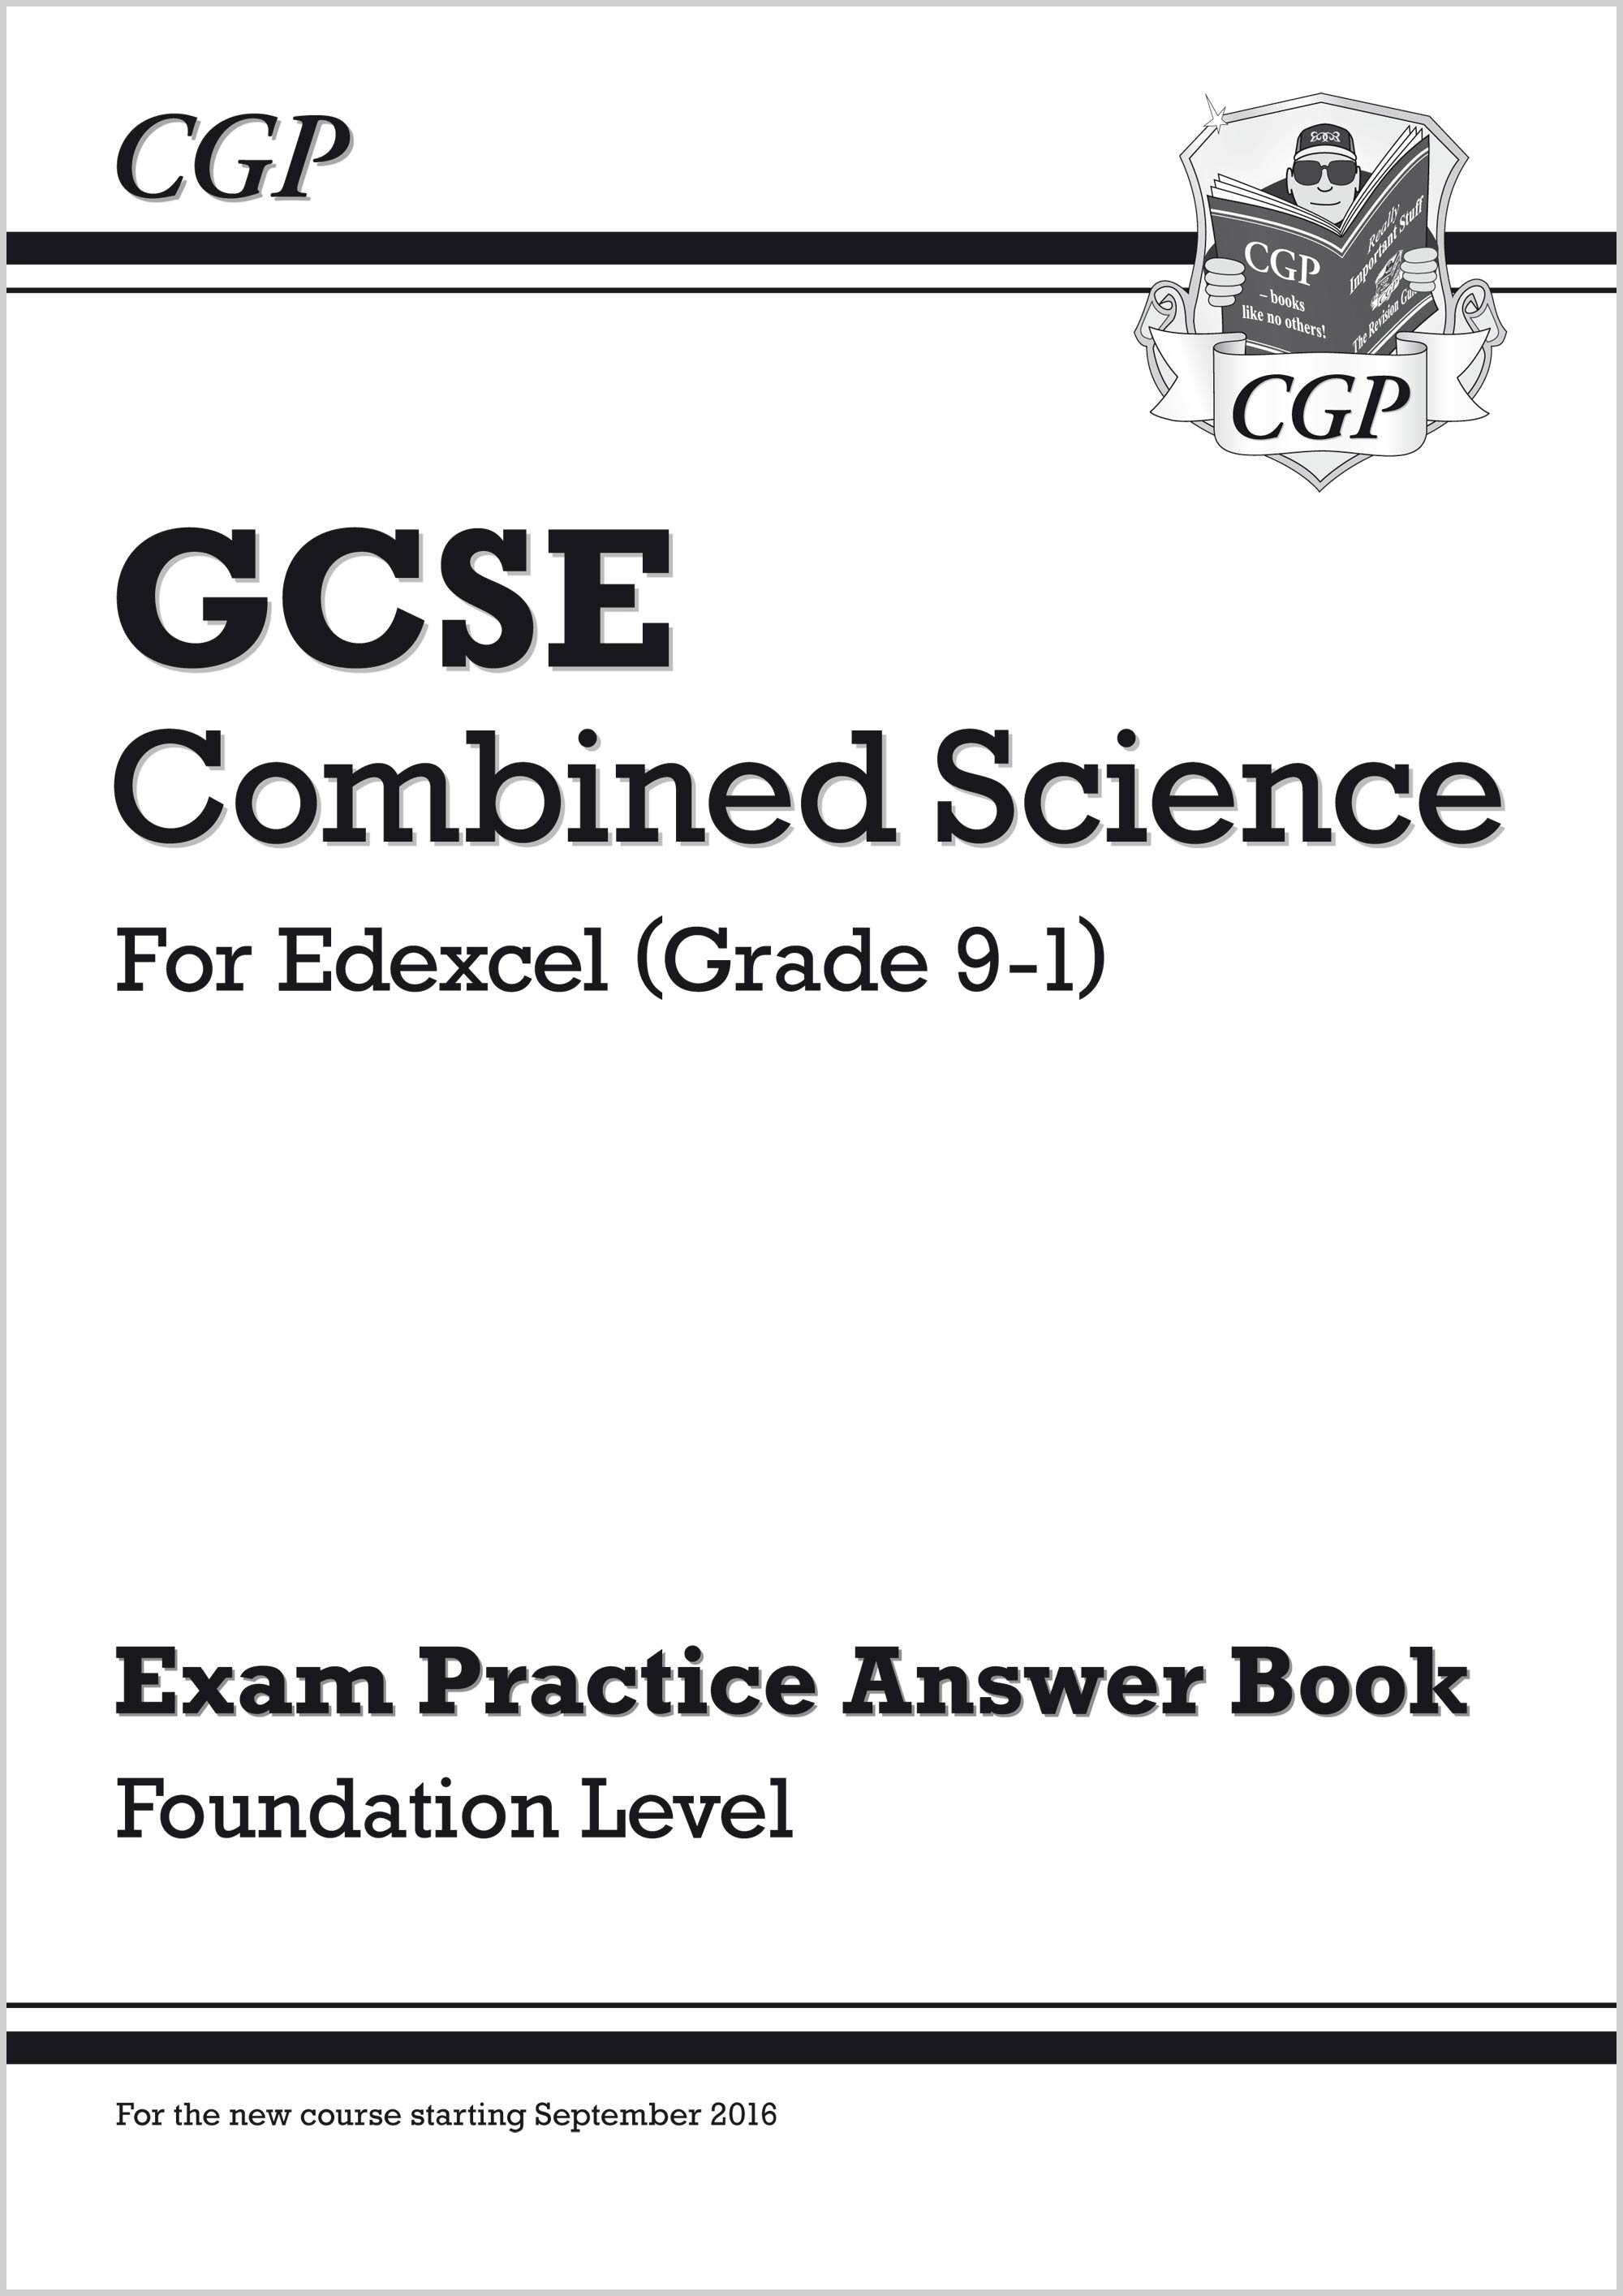 SEFQA41 - GCSE Combined Science: Edexcel Answers (for Exam Practice Workbook) - Foundation